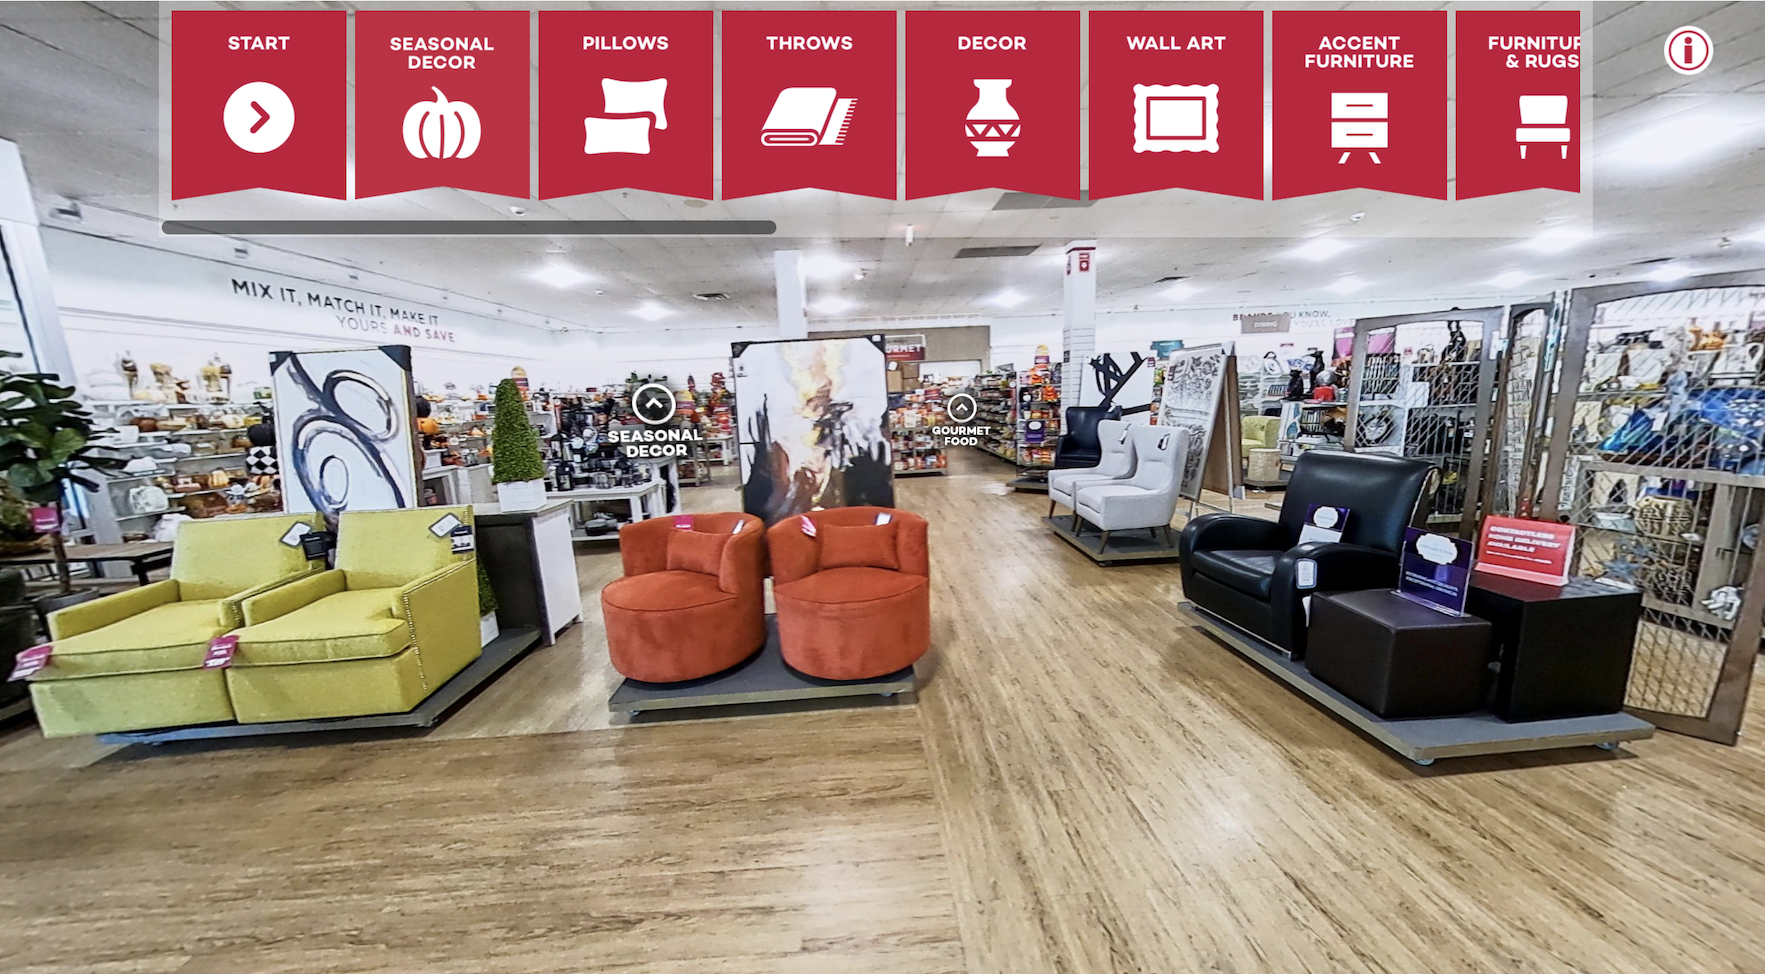 TJX finally brought HomeGoods, the off-price home textiles and decor chain, online ahead of what should be a hectic holiday retail season.